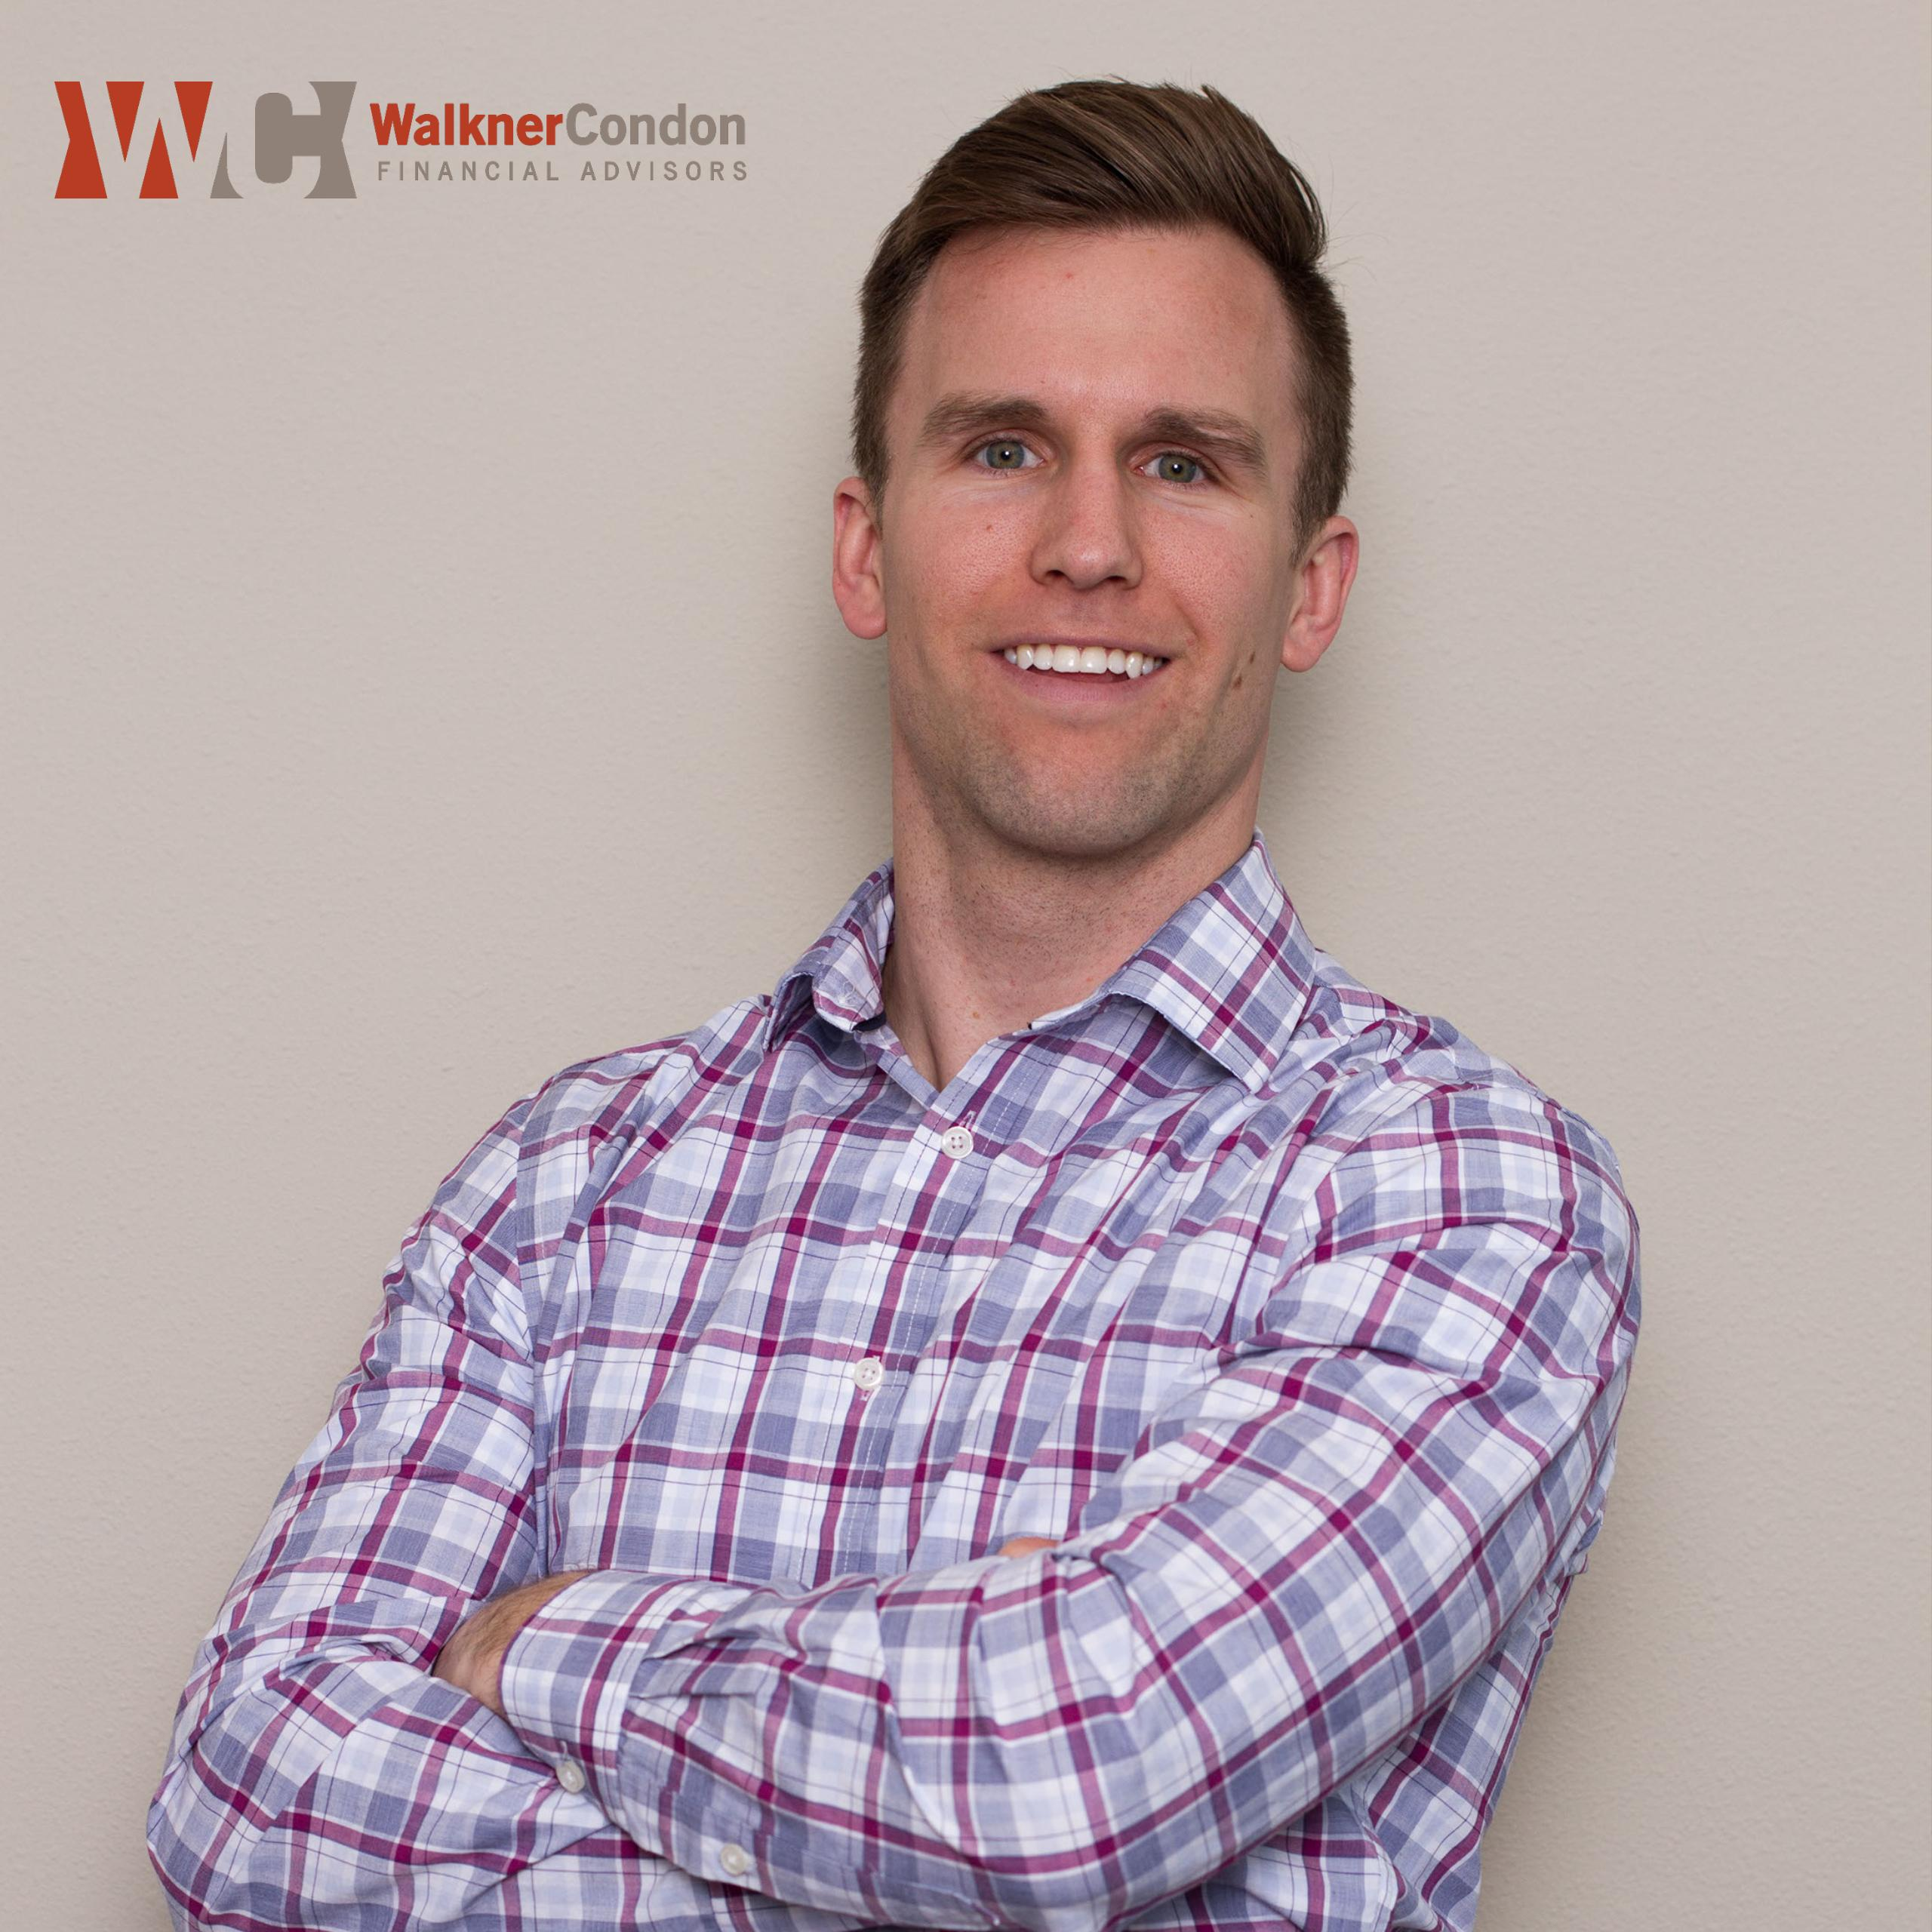 Clint Walkner quoted on wealthmanagement.com